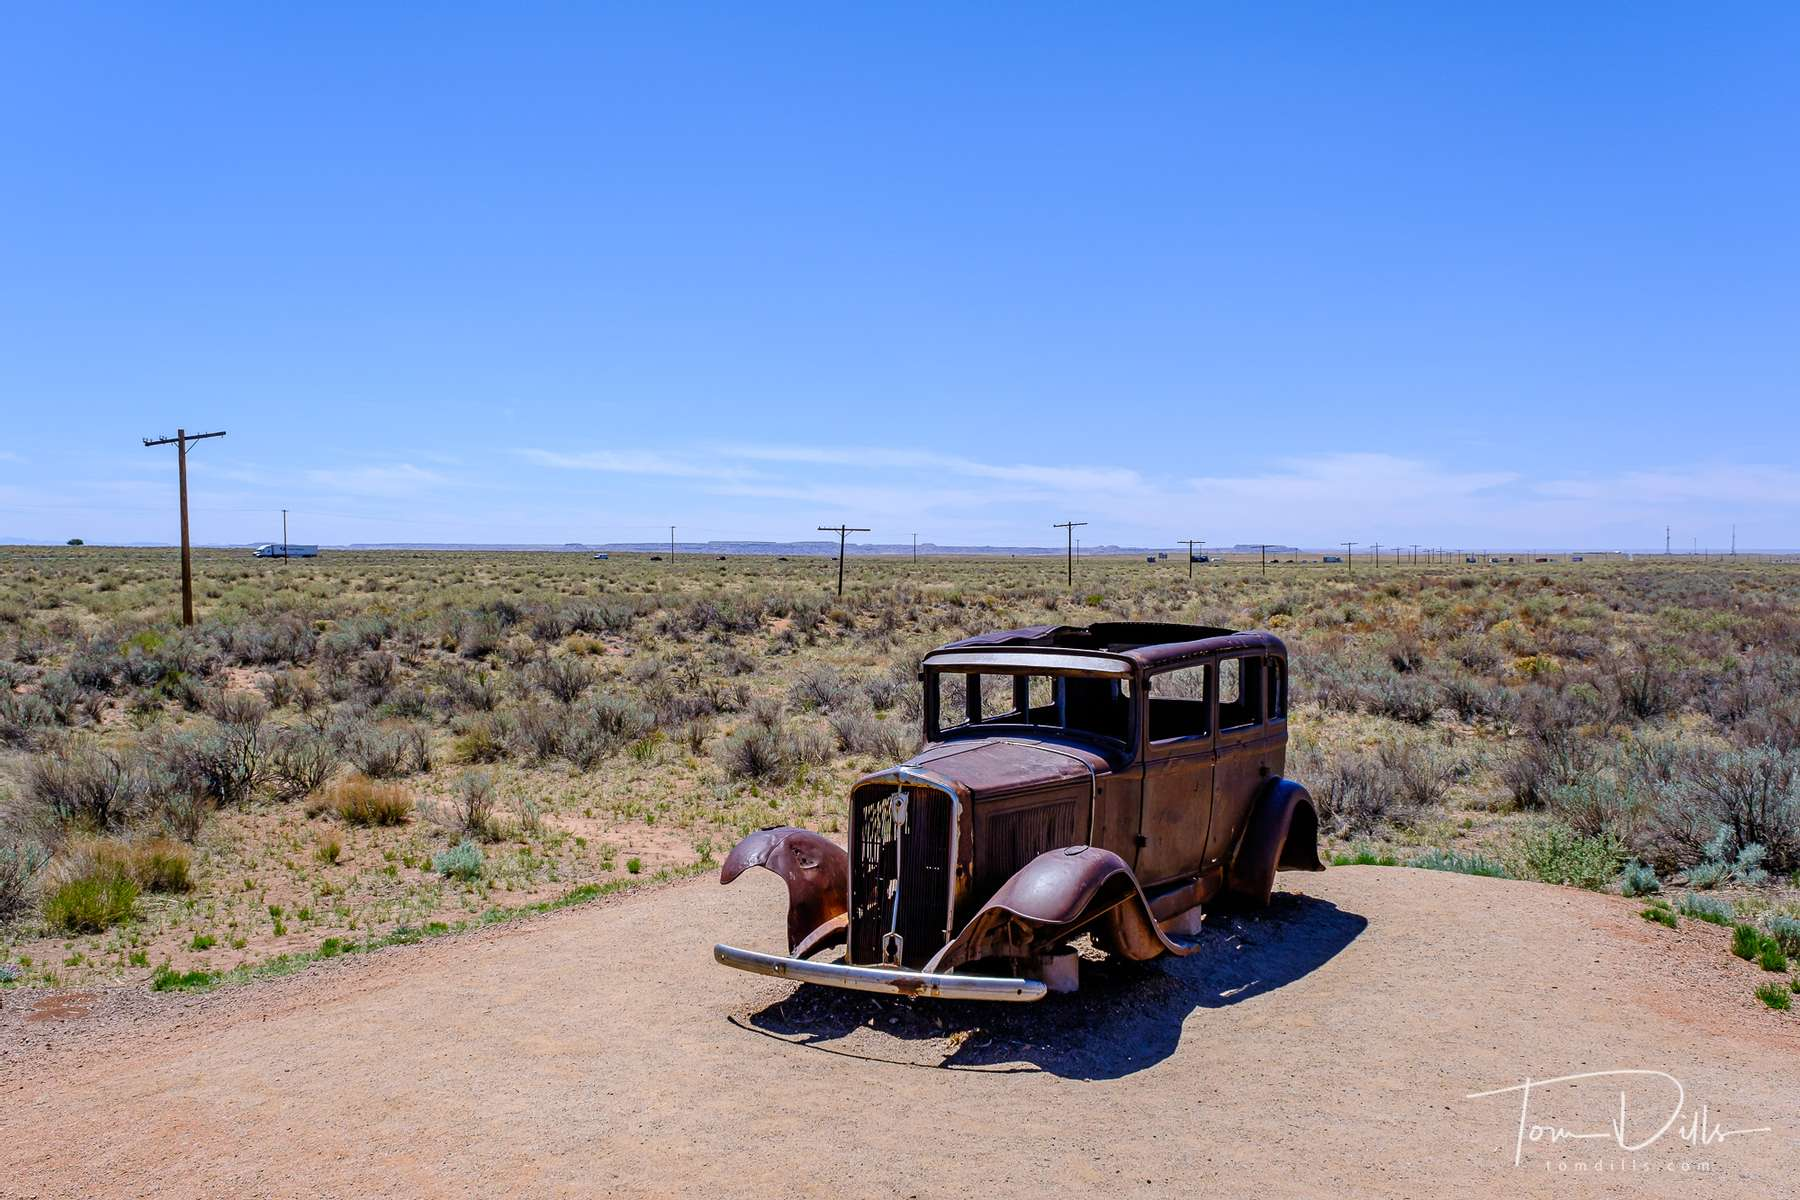 Exhibit at the place where the original route of Route 66 crosses the Petrified Forest Road in The Painted Desert, part of Petrified Forest National Park in Arizona